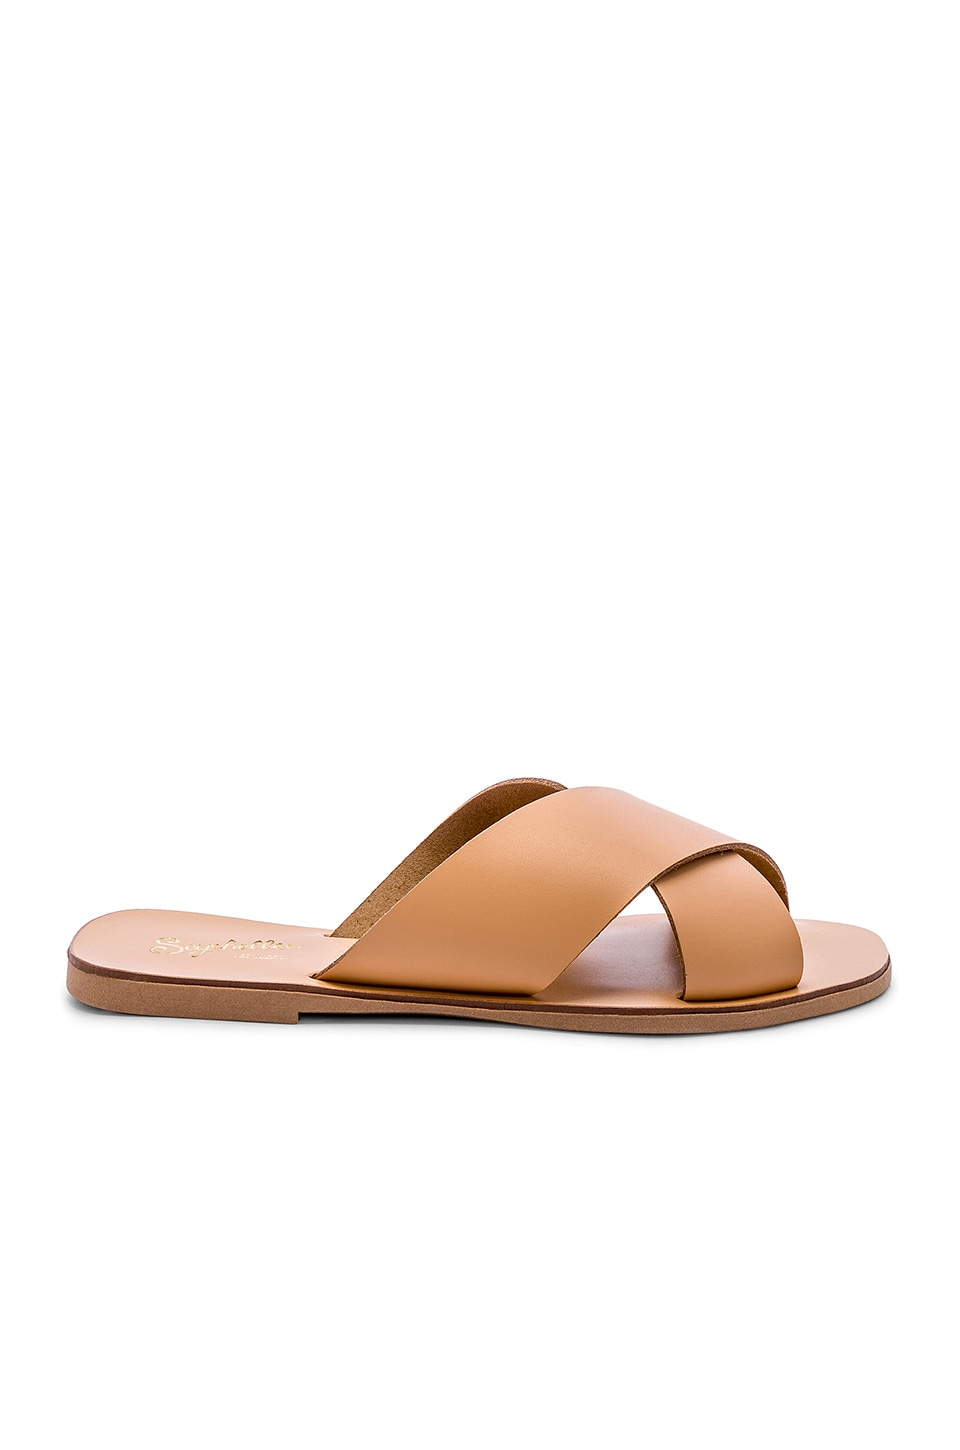 Seychelles Total Relaxation Sandal in Vacchetta